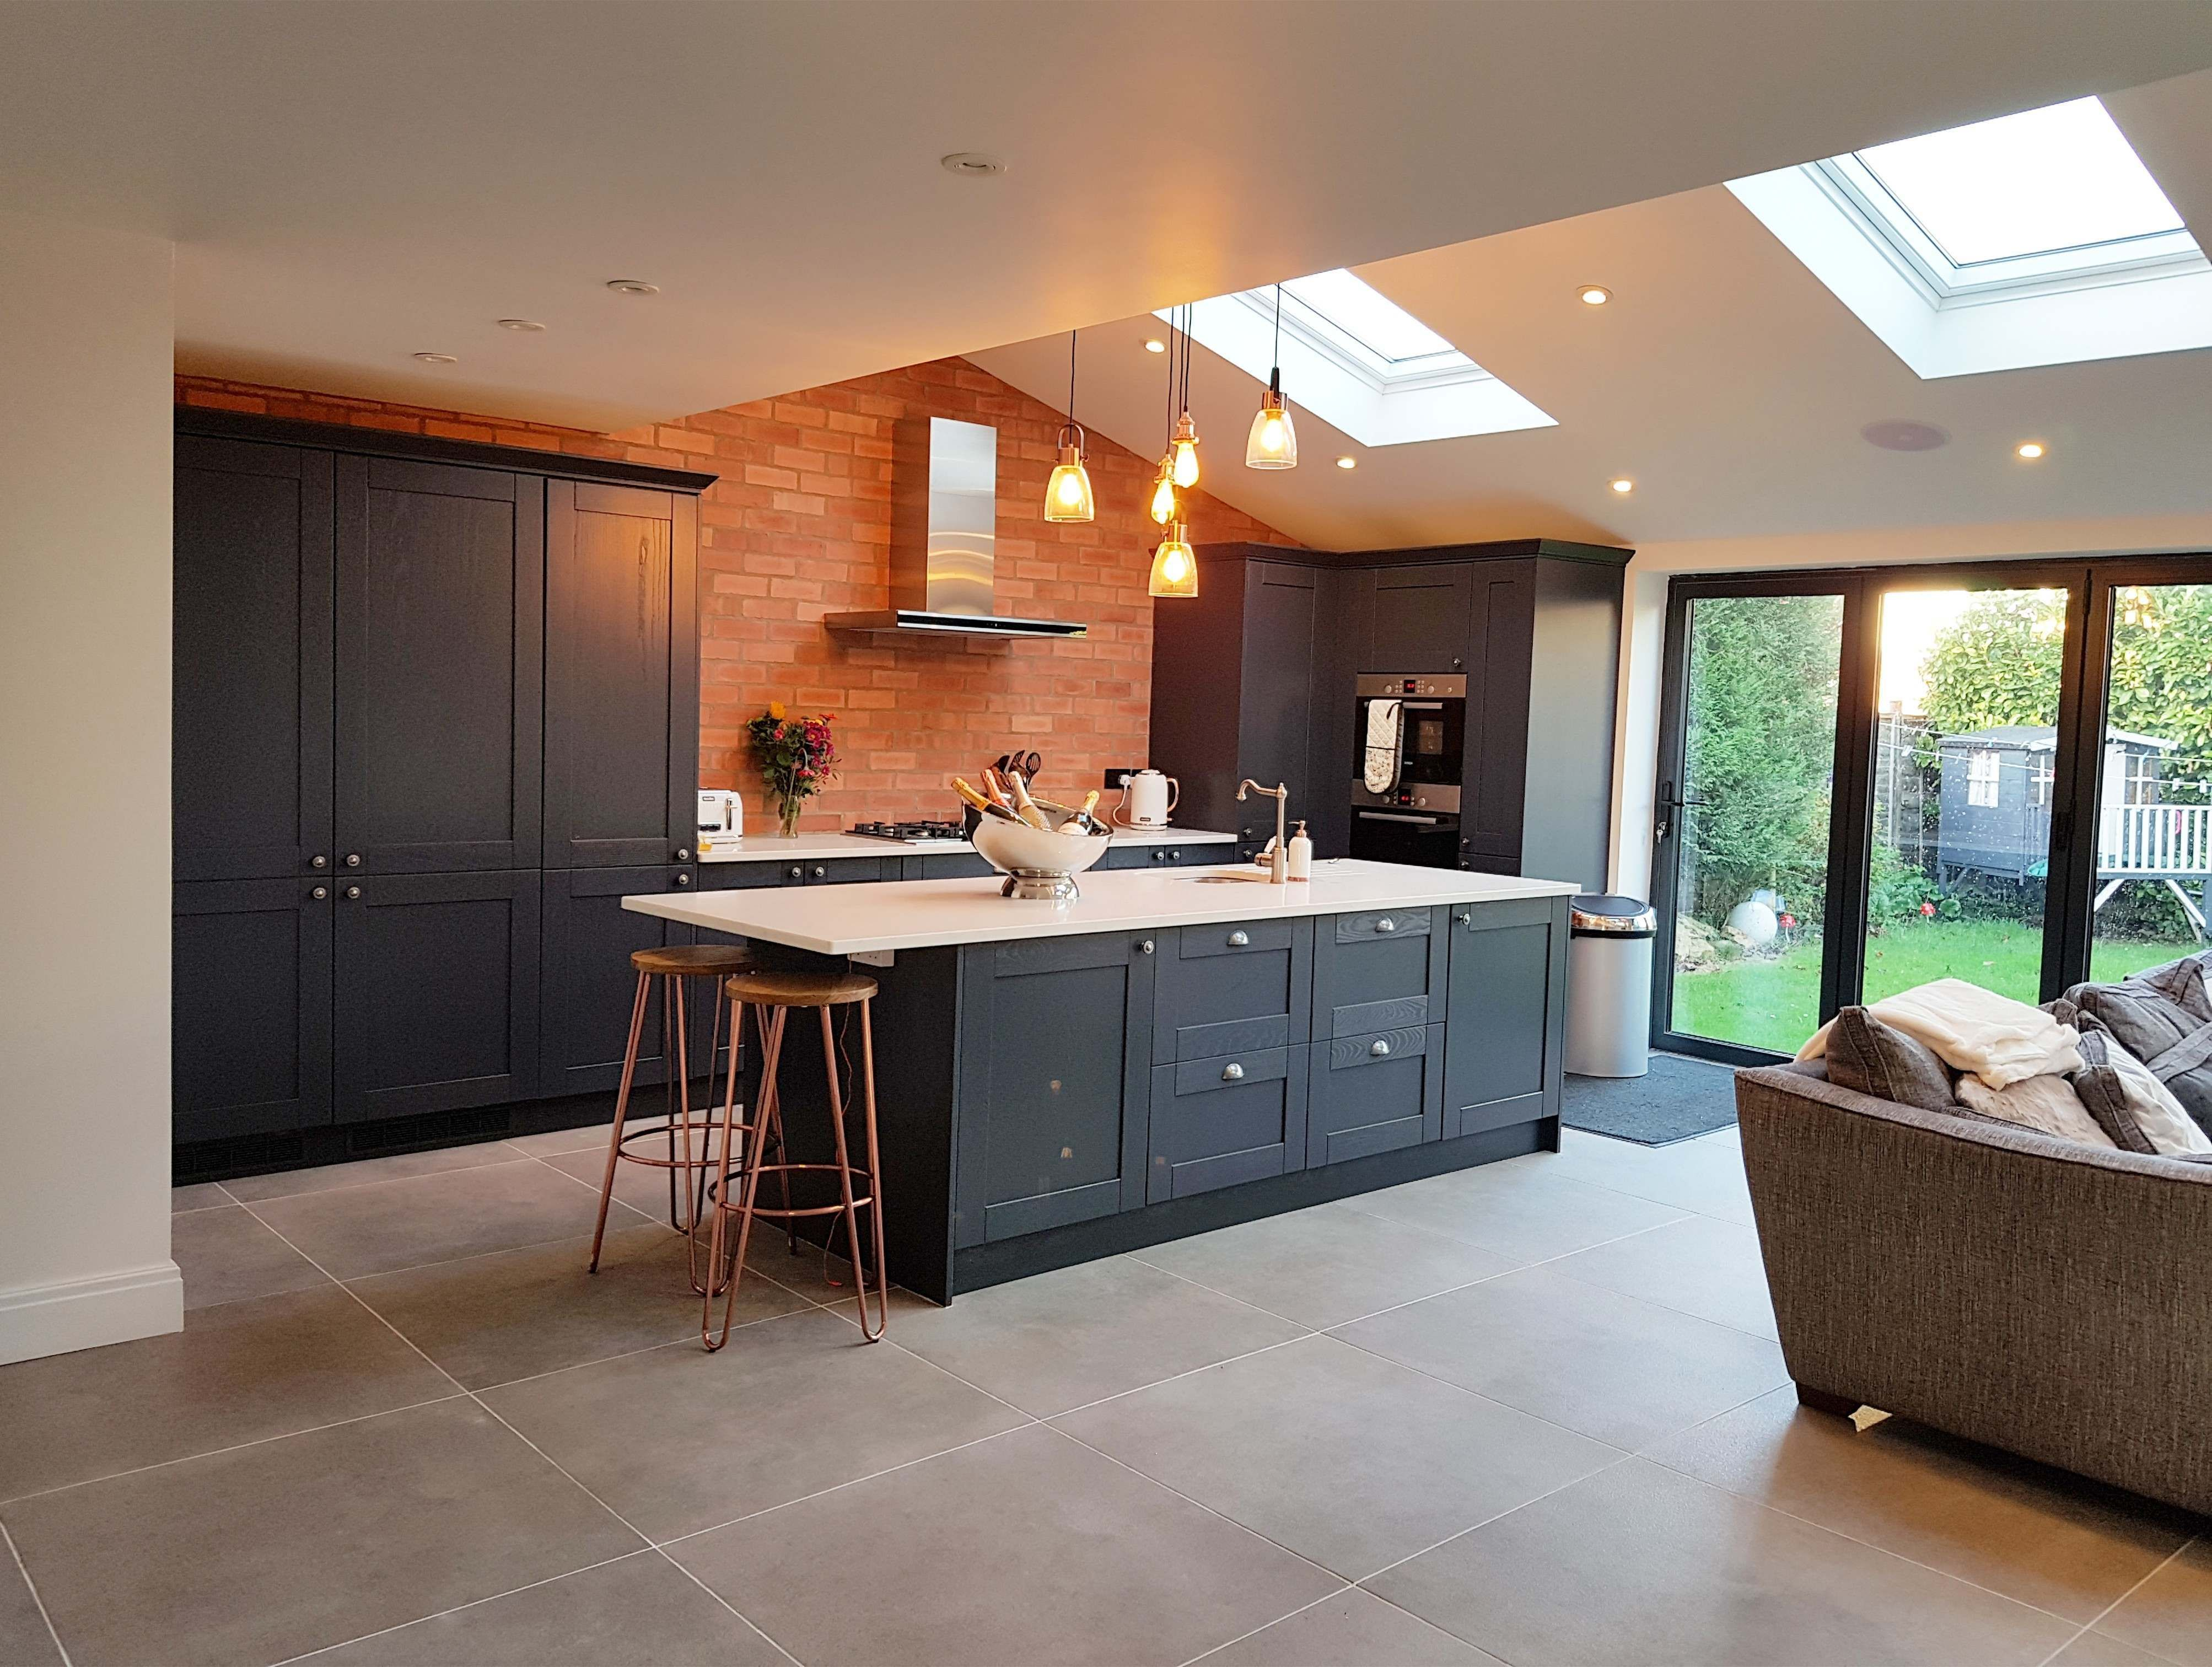 Dunsen Grey Floor Tiles Open plan kitchen living room